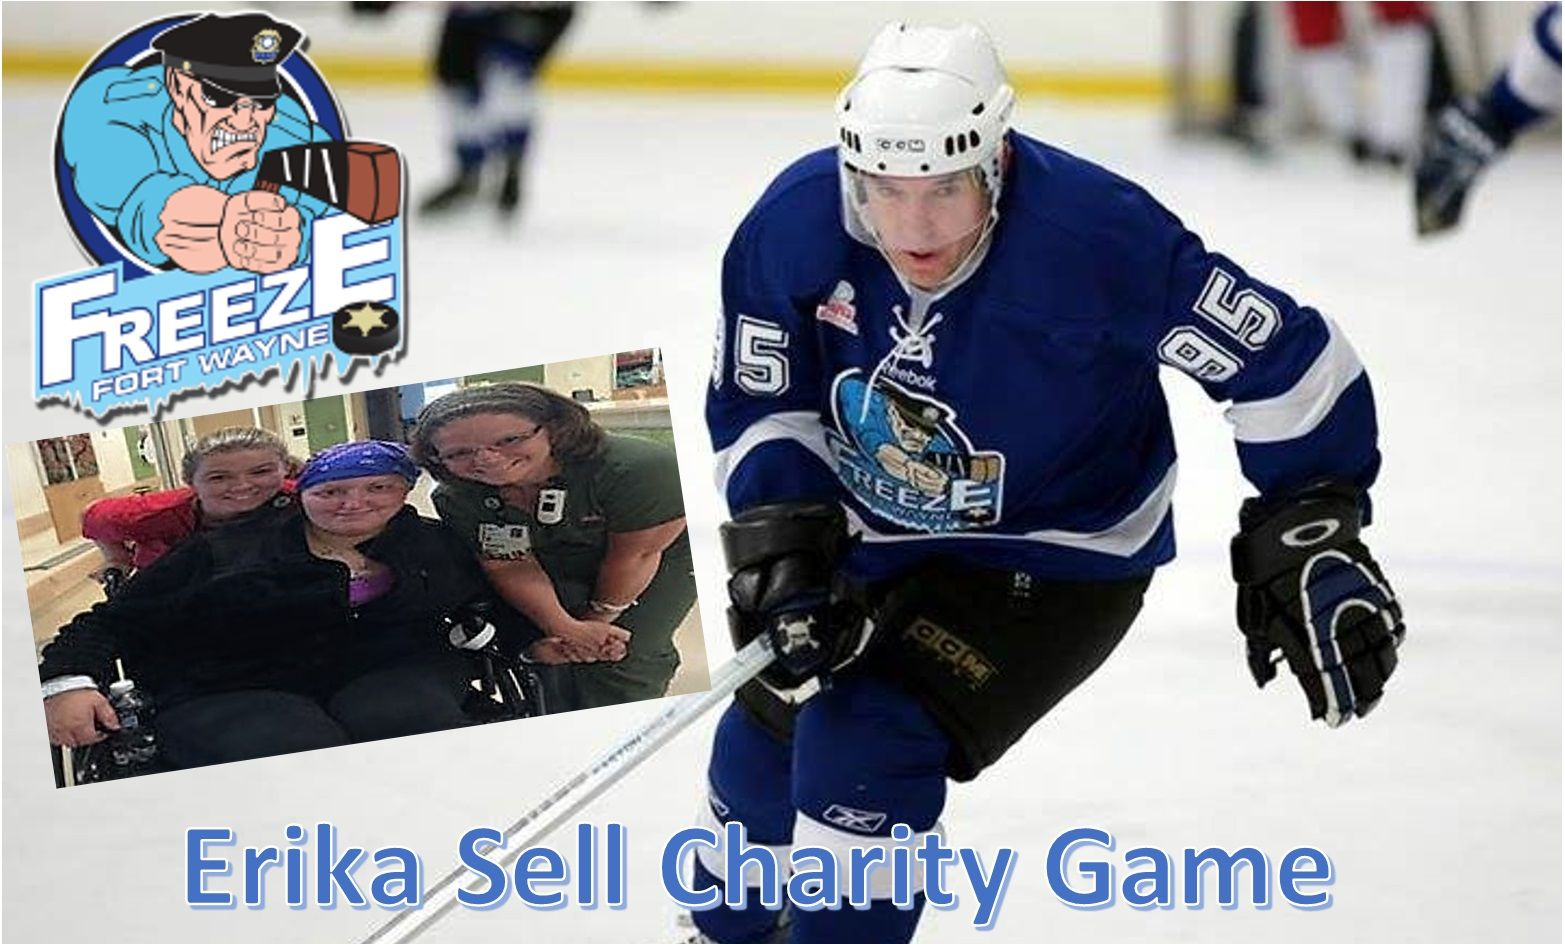 Erika Sell Charity Game